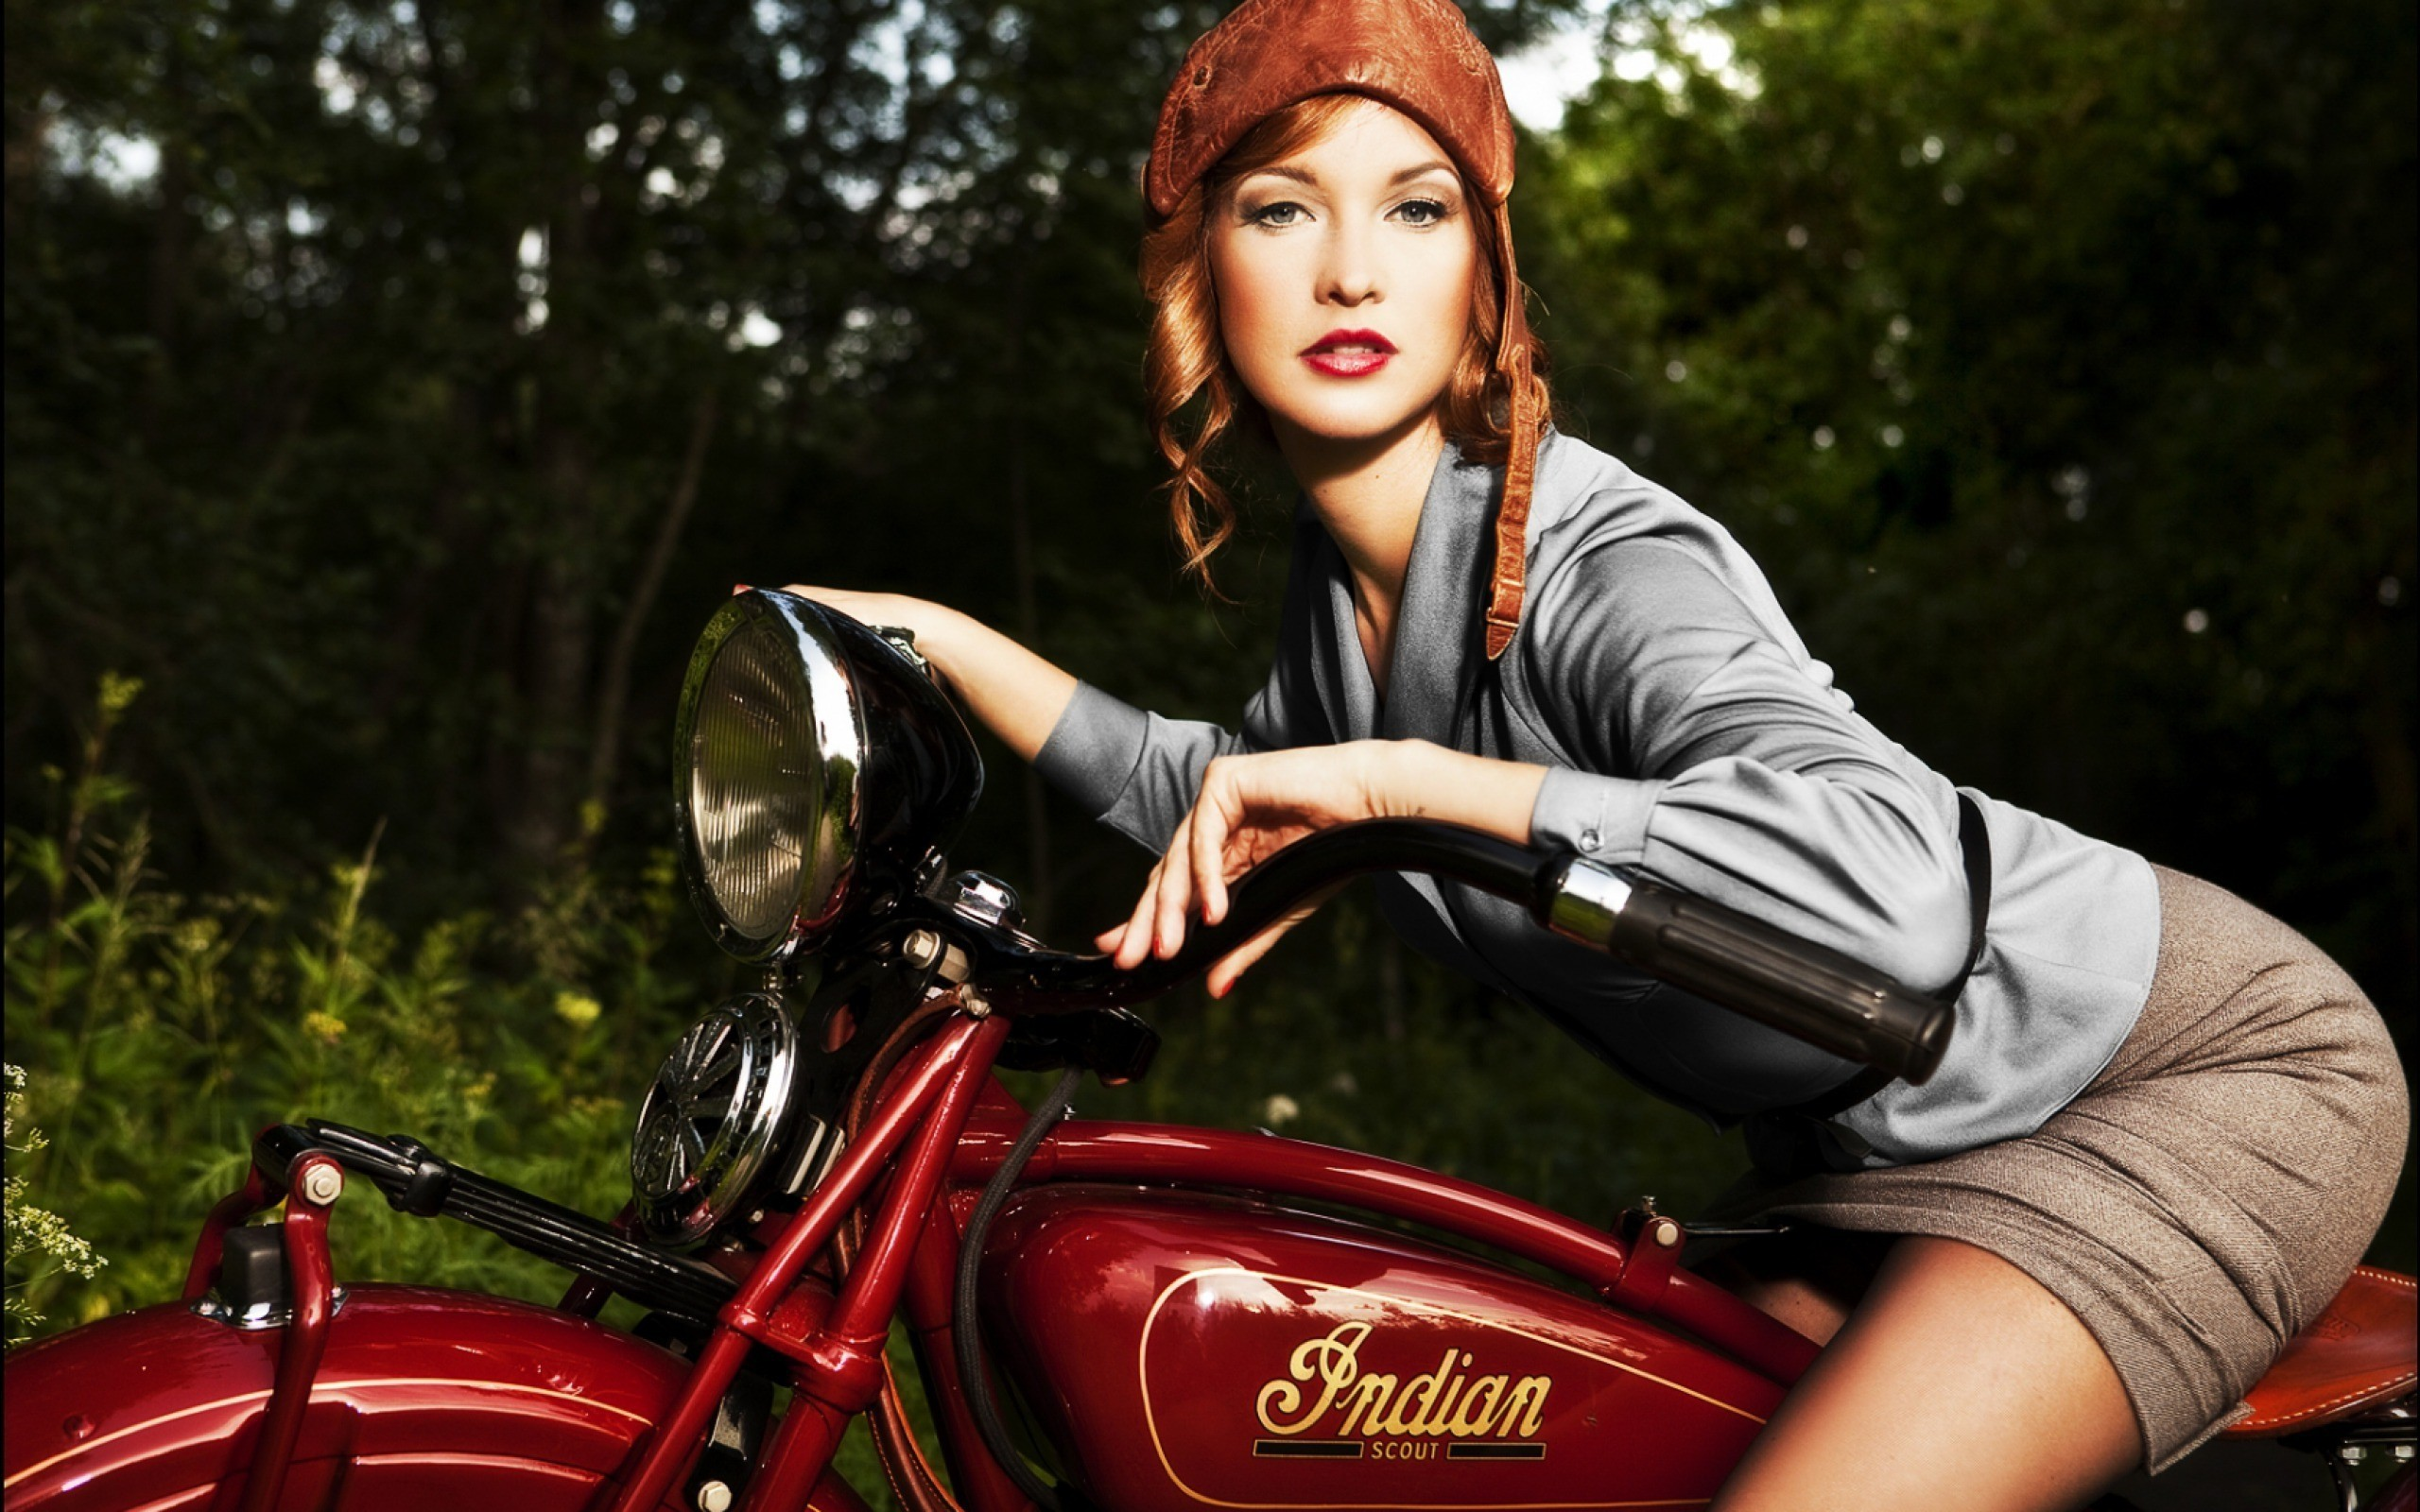 motorbikes Indian wallpapers and images – wallpapers, pictures, photos .